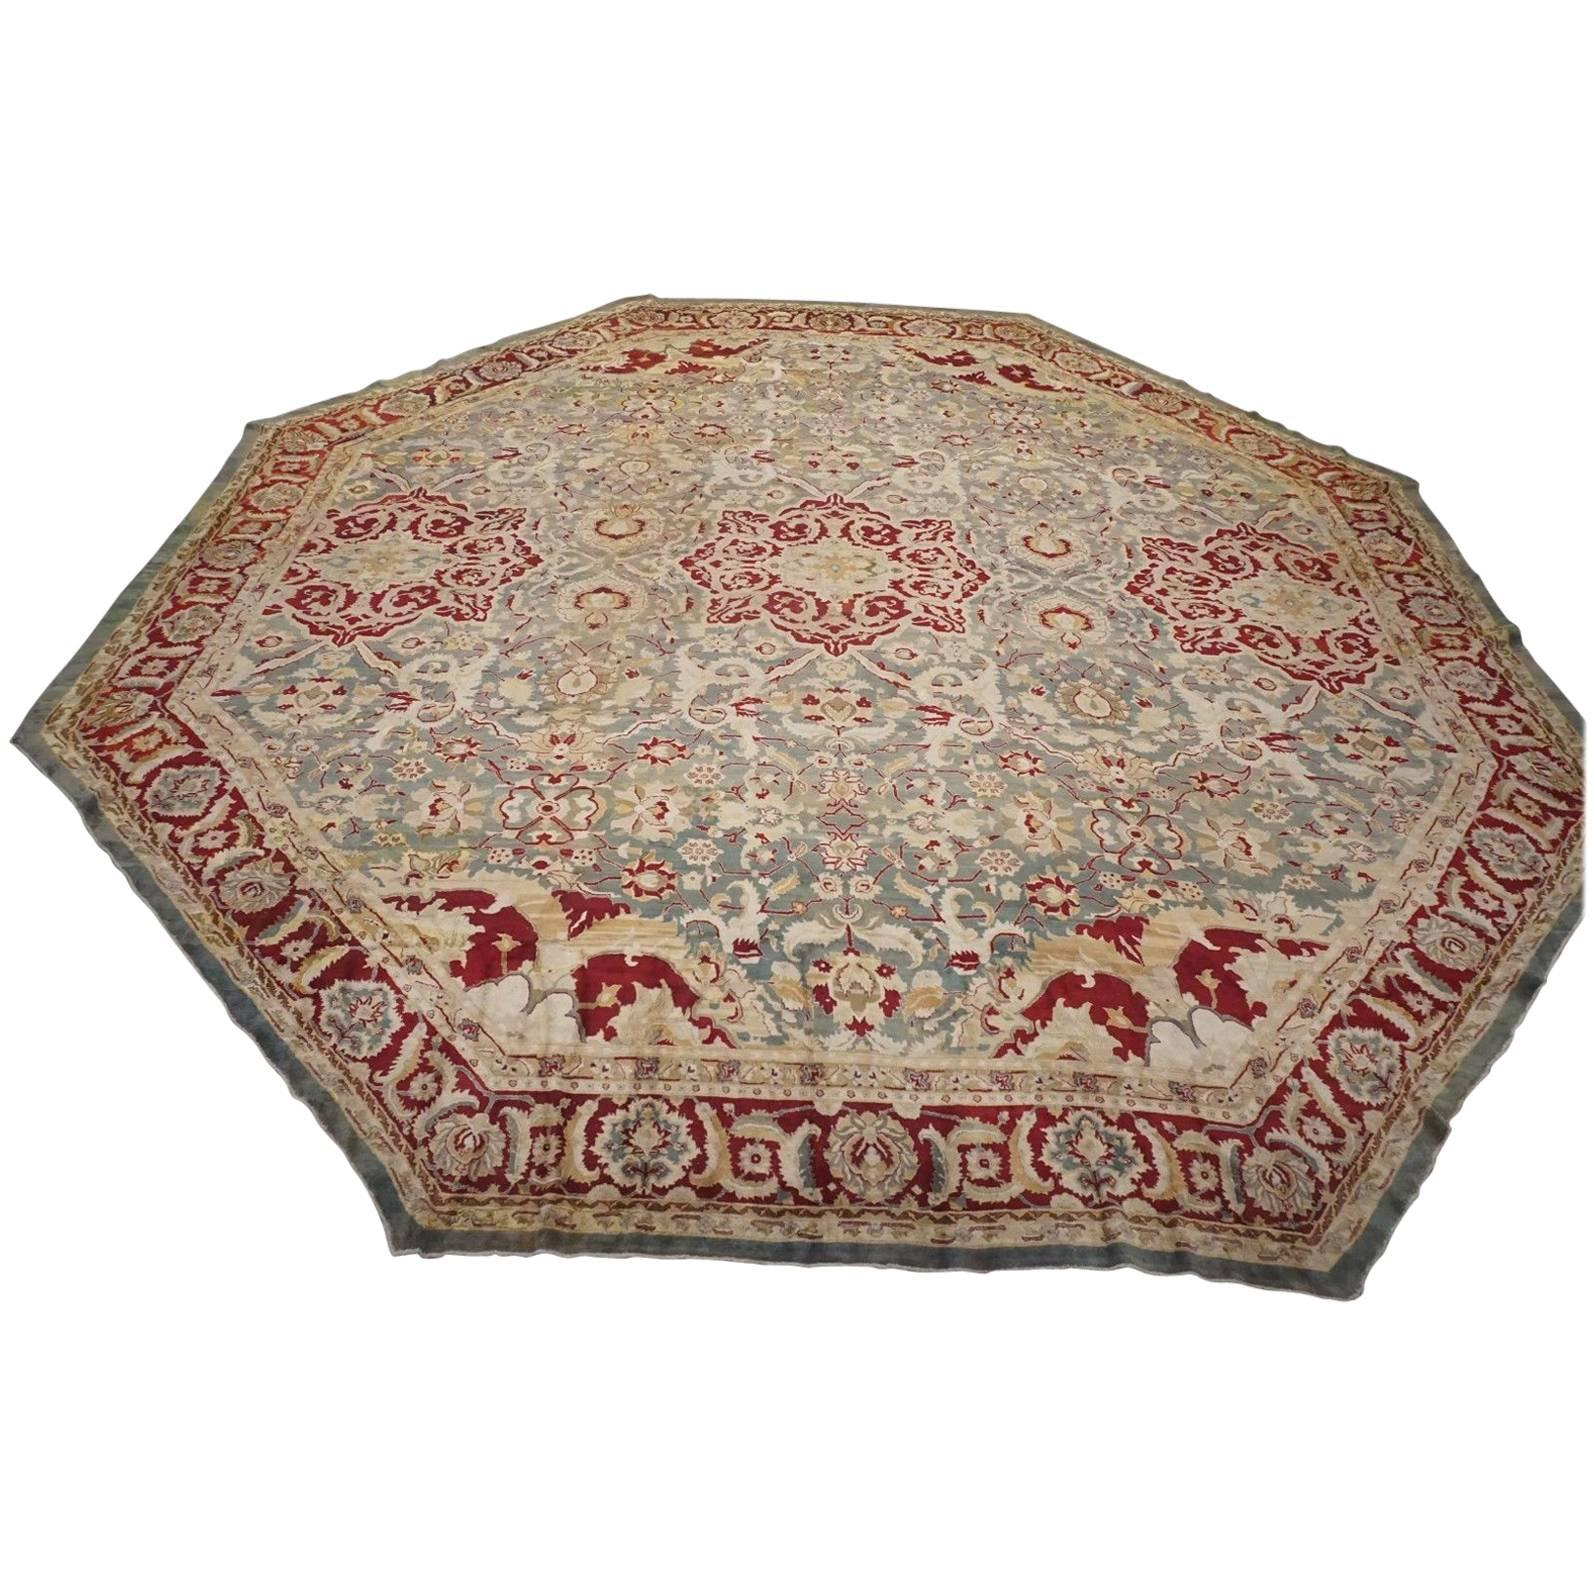 Antique Octagon Shaped Agra Rug, Circa 1880 For Sale